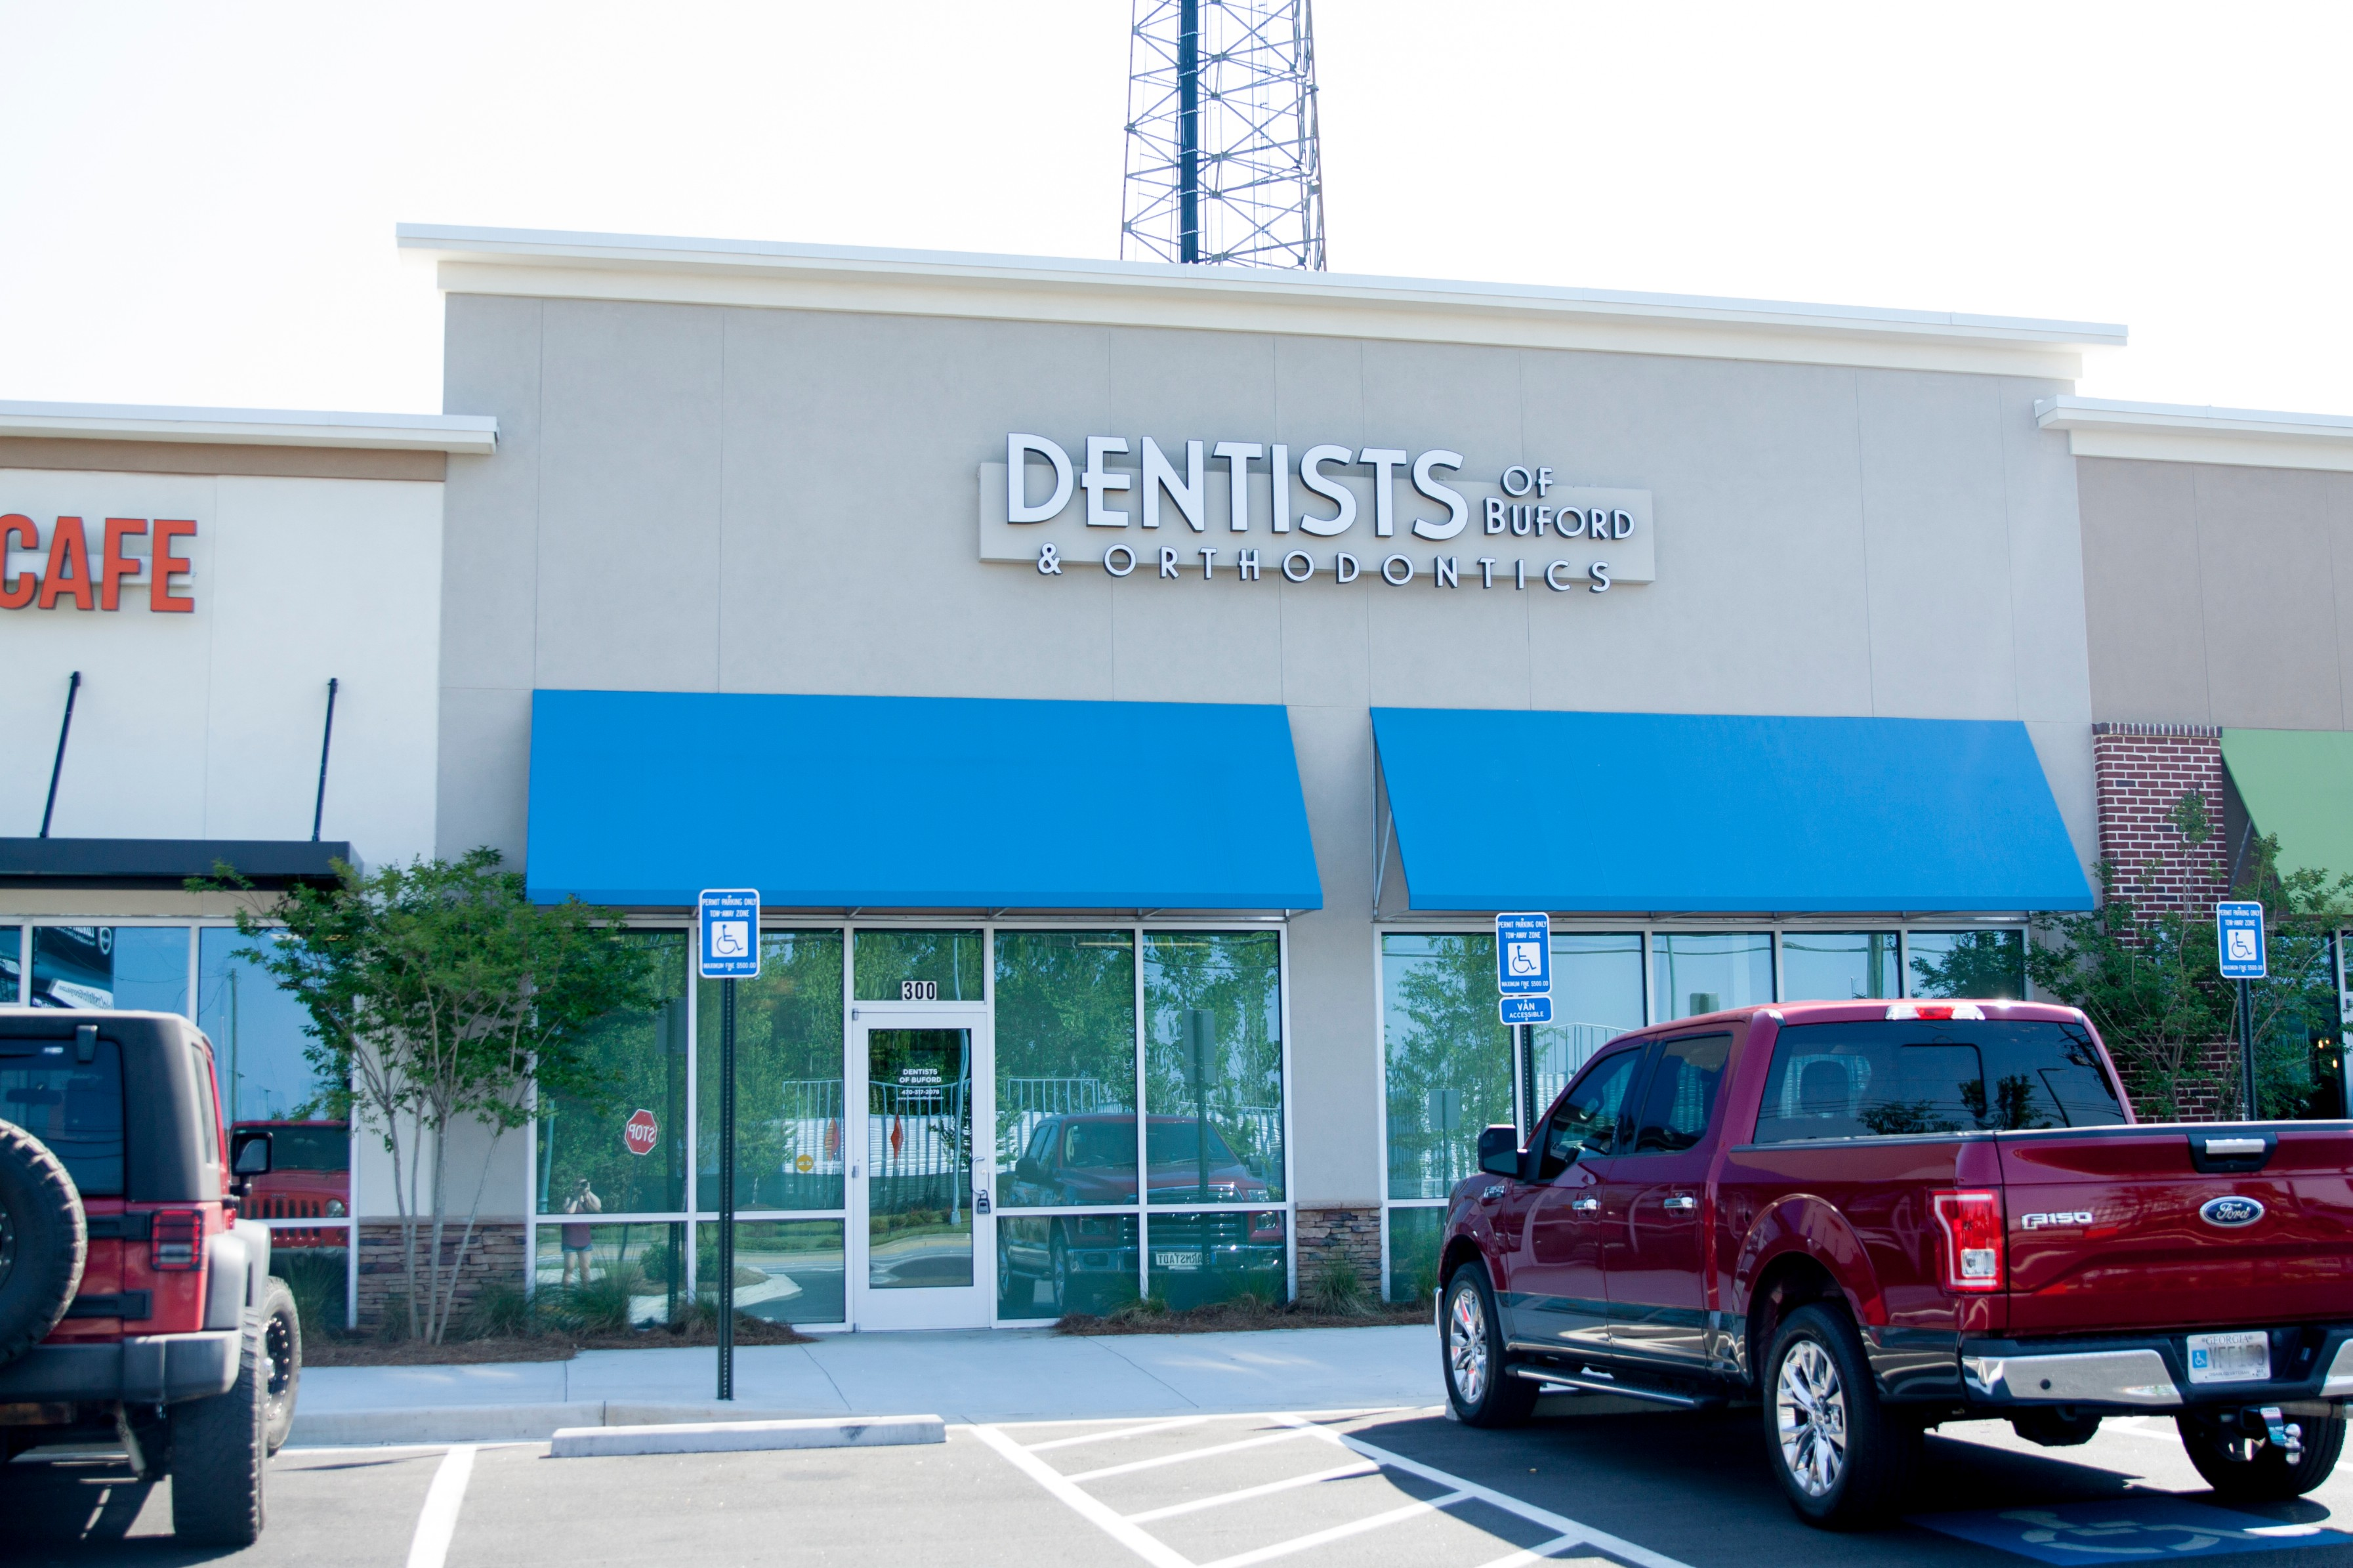 Dentists of Buford image 3